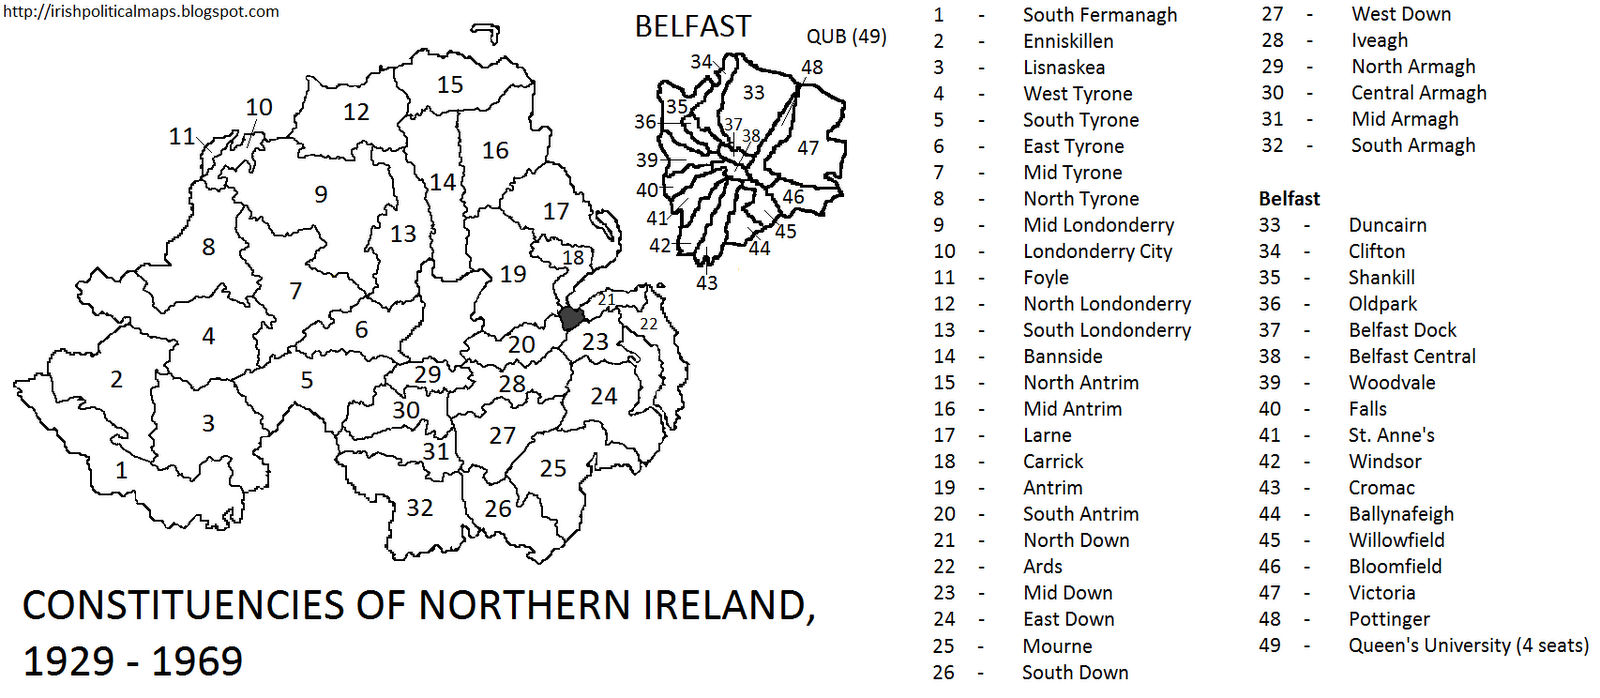 12. S Northern ireland troubles to 2011 |Gerrymandering Northern Ireland